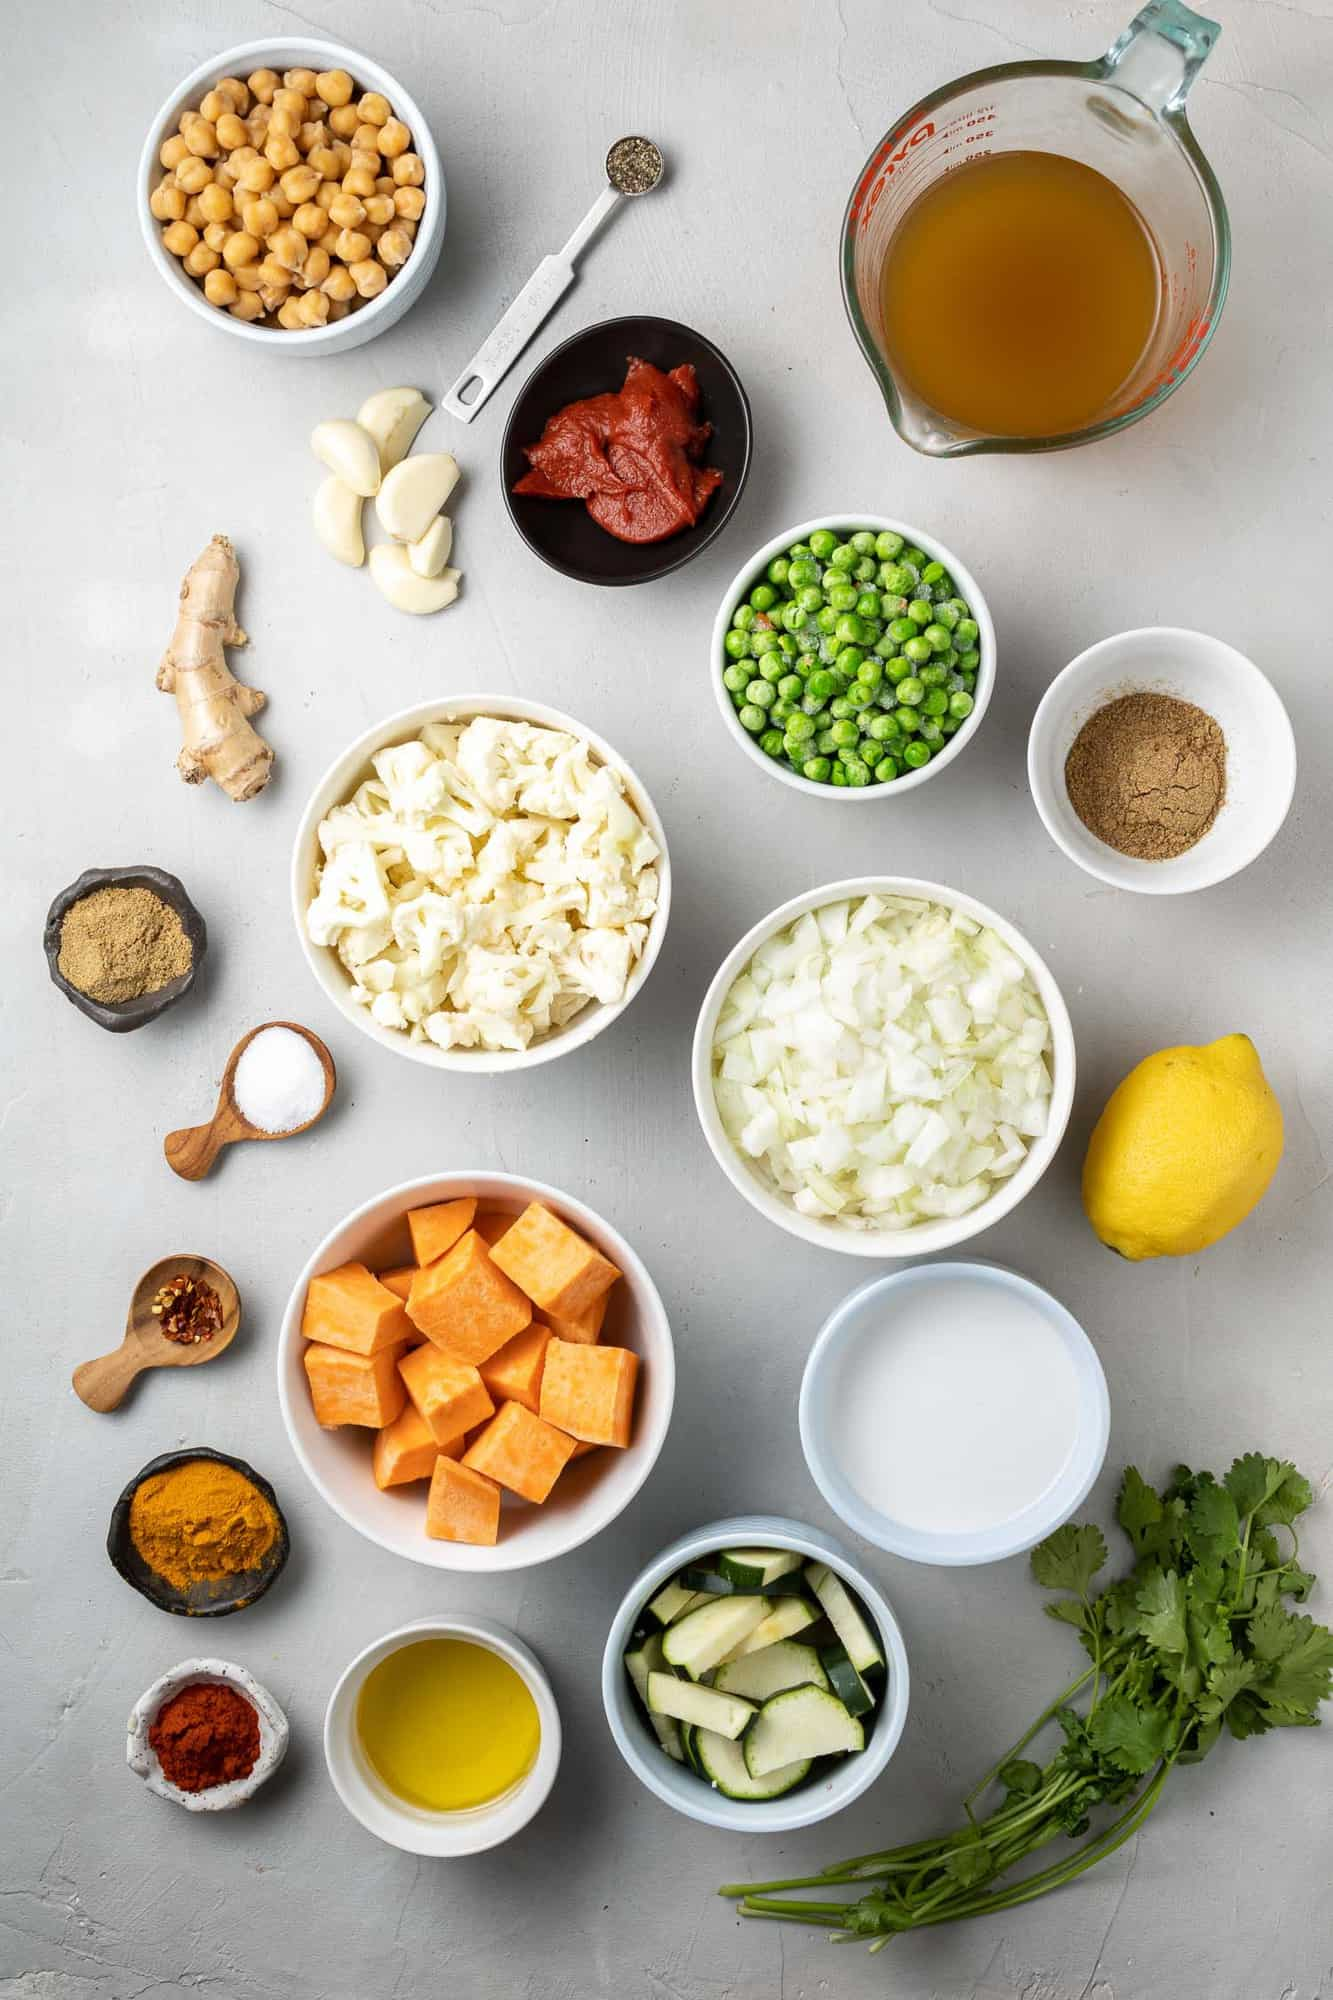 Overhead view of ingredients needed including spices, chickpeas, cauliflower, sweet potatoes, and peas.